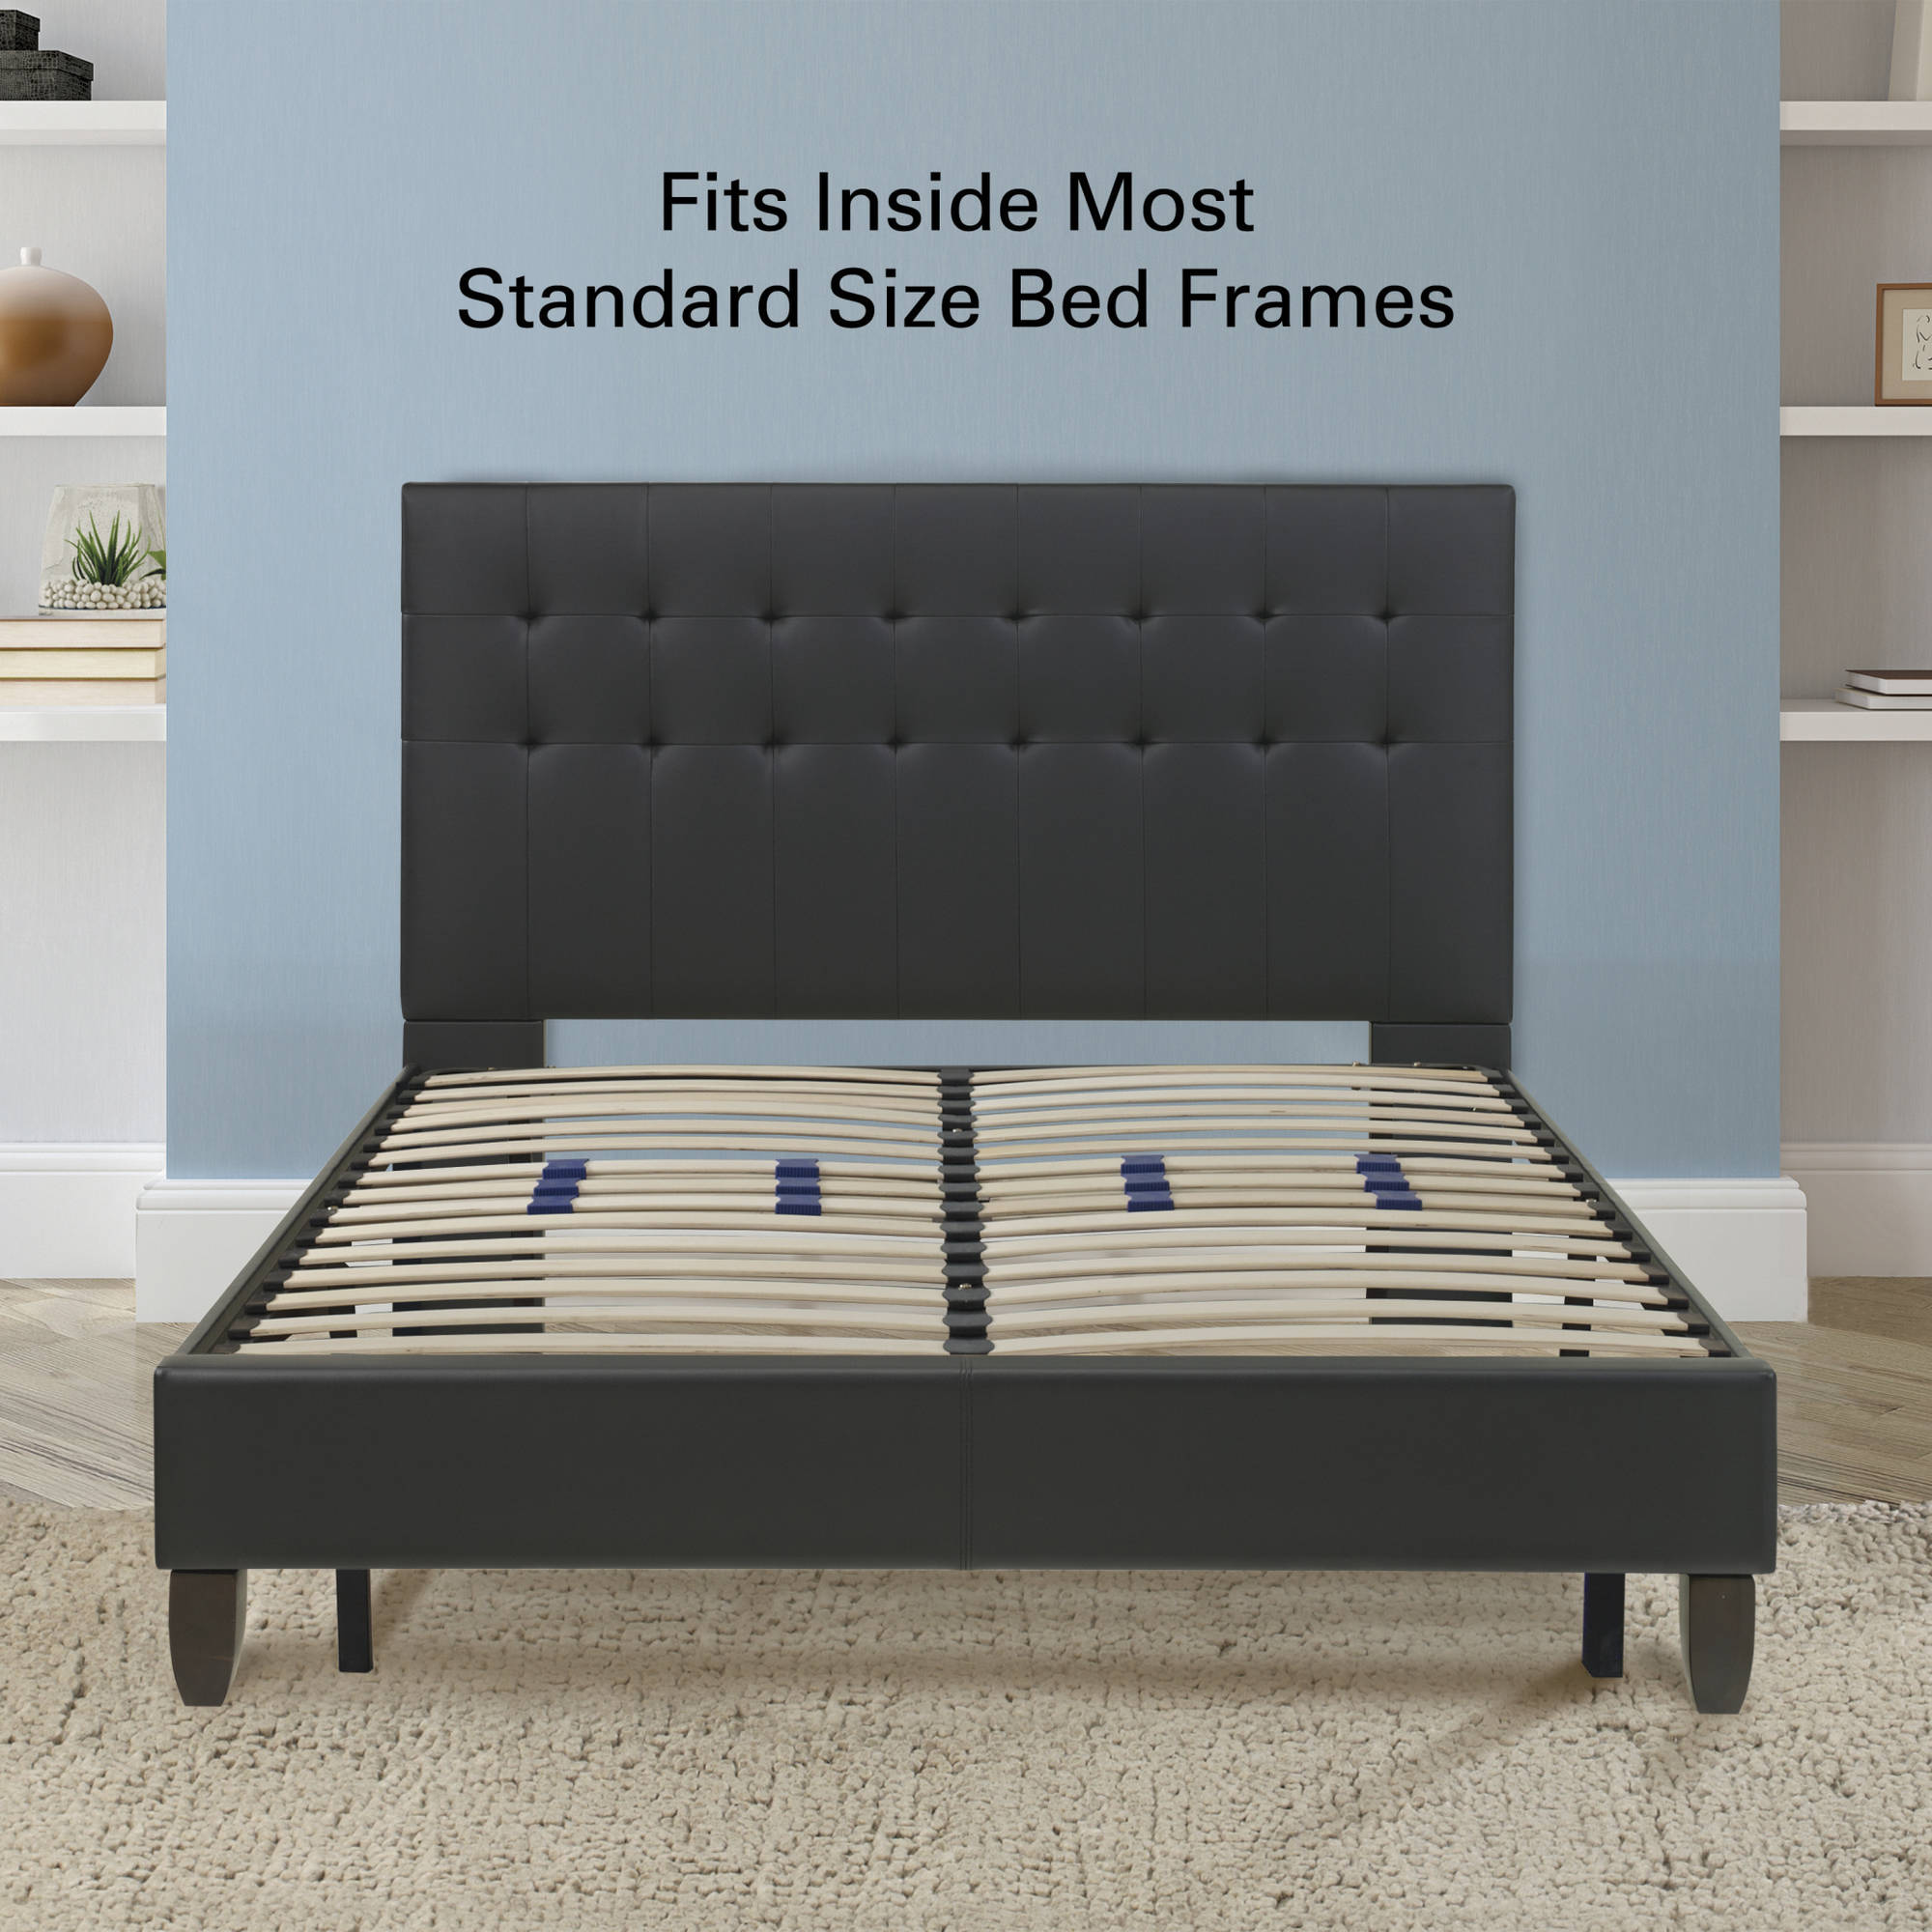 premier flex platform base foundation bed frame with adjustable lumbar support multiple sizes walmartcom